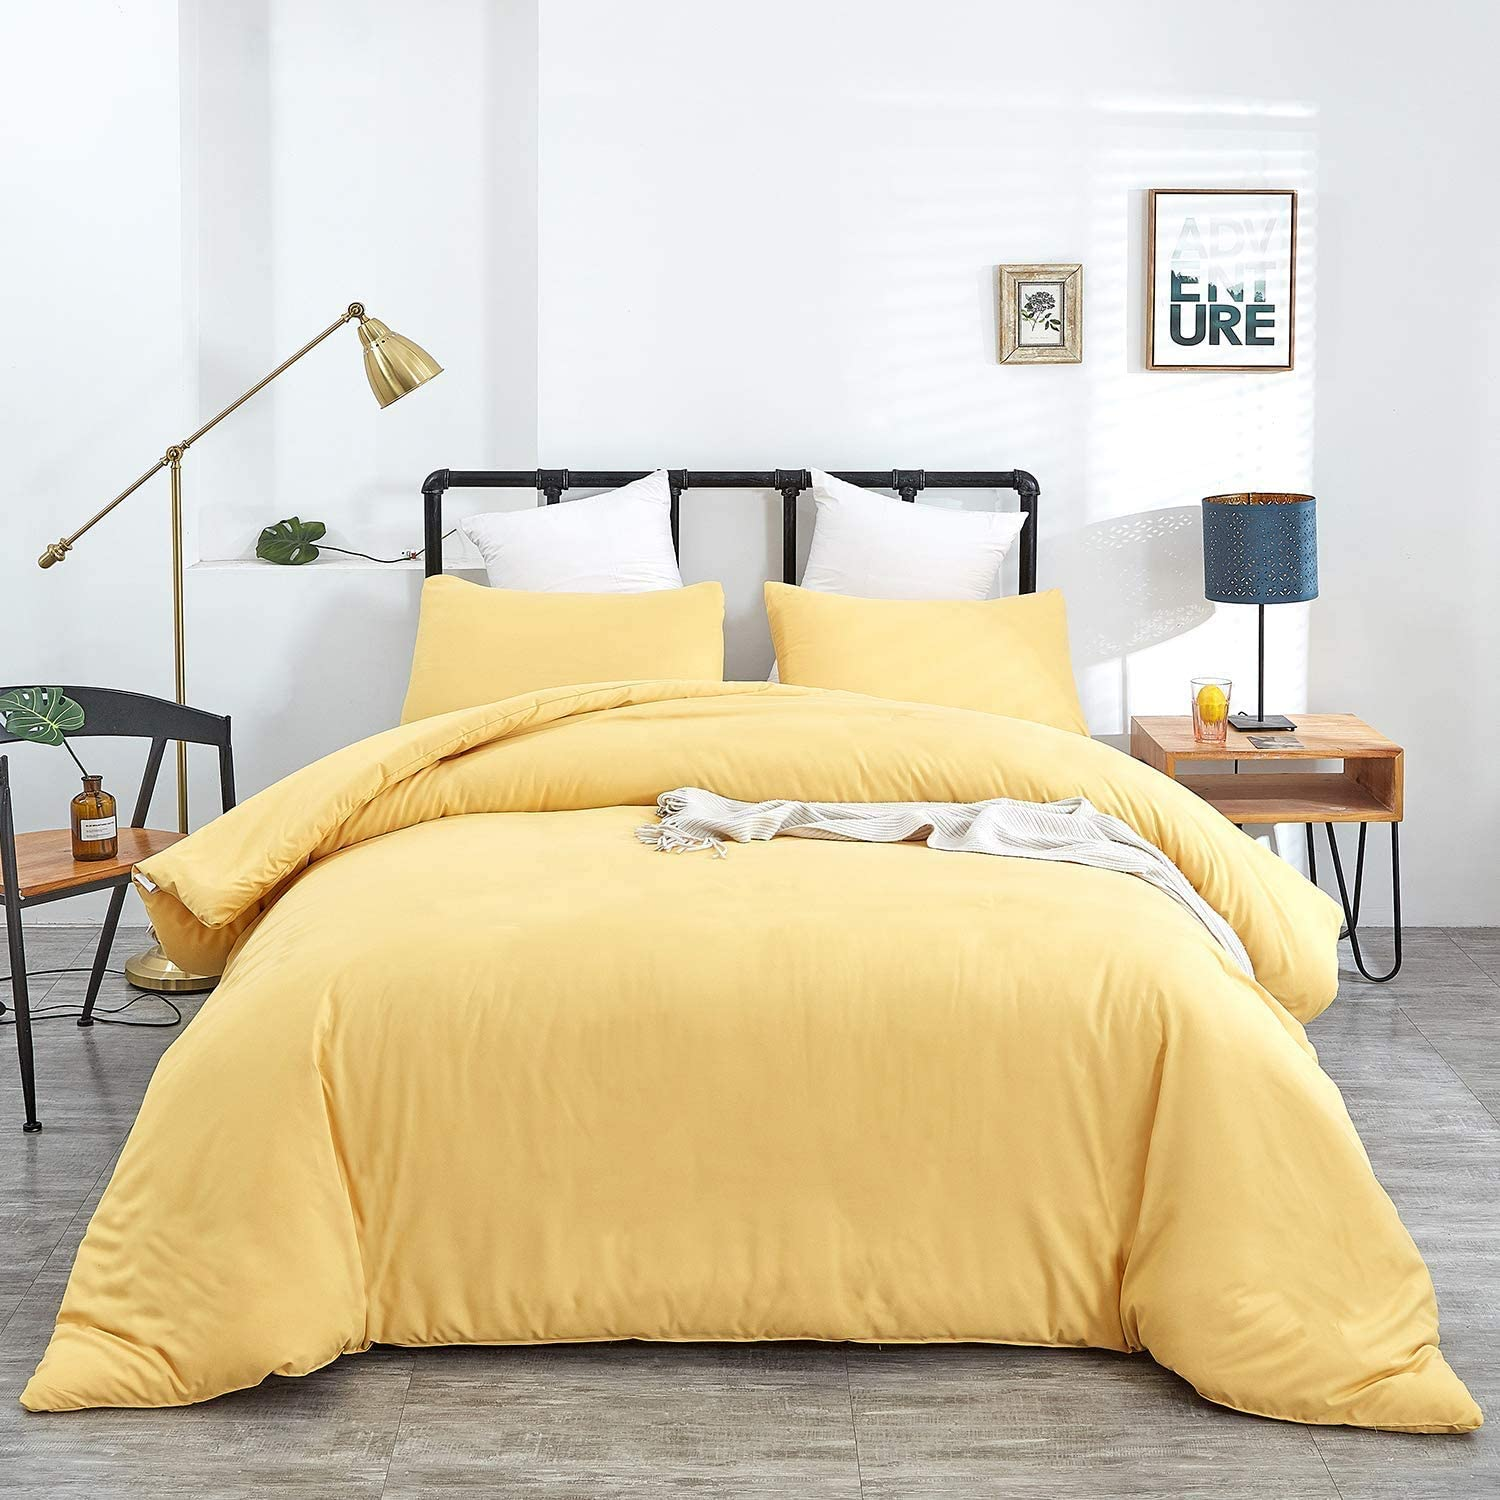 Jumeey Yellow Comforter It is very popular Set Twin Max 82% OFF Quilts Wom Light Bedding